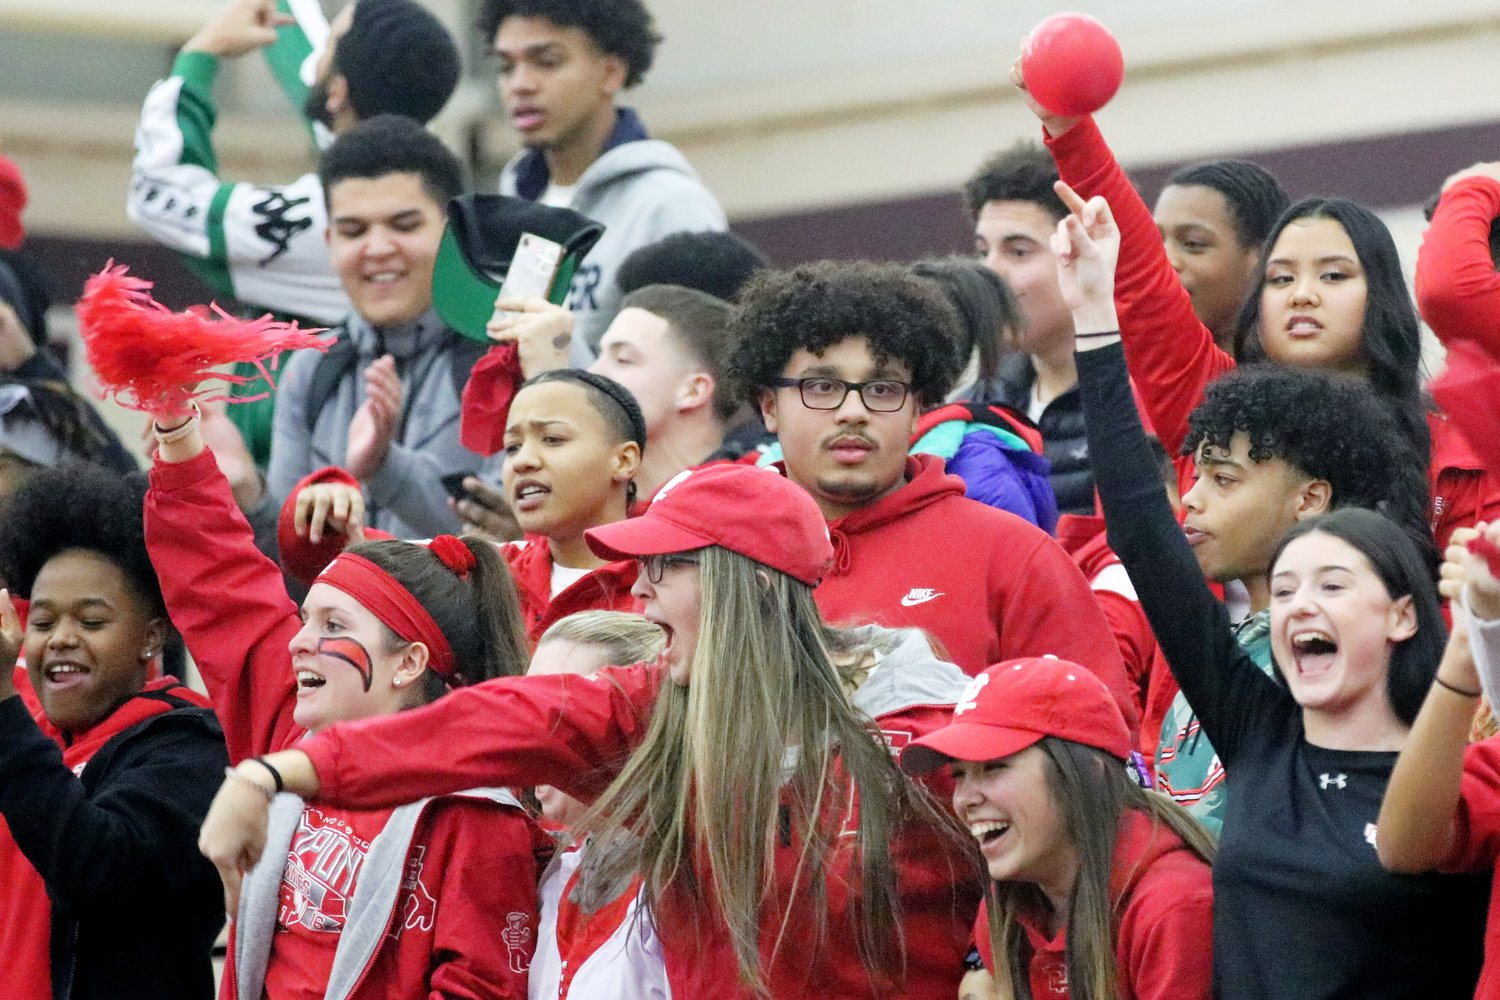 A strong showing from Townie Nation in win over rival LaSalle